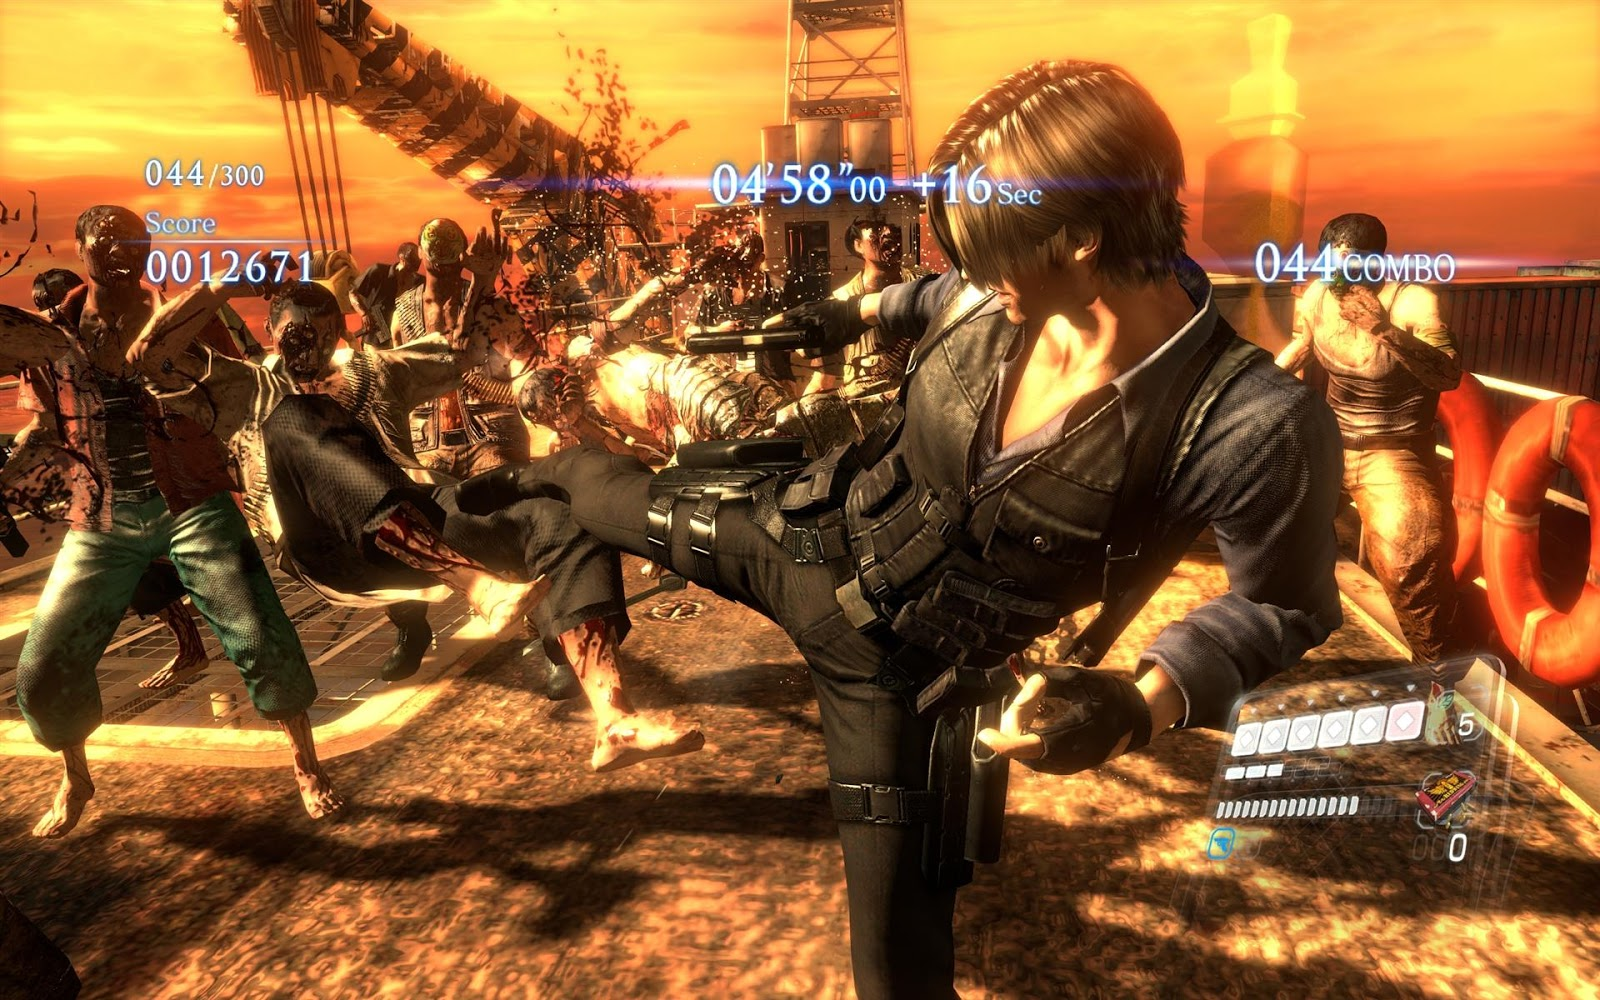 Download Resident Evil 6 Full Version